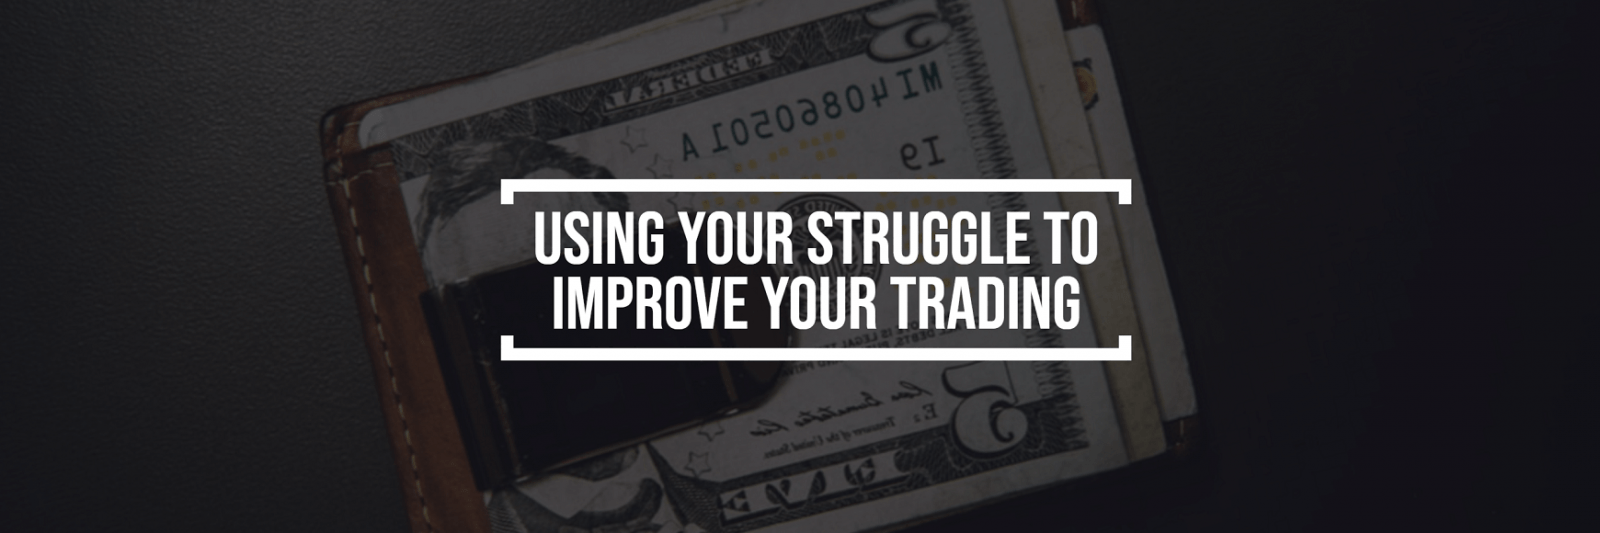 Using Your STRUGGLE to Improve Your Trading